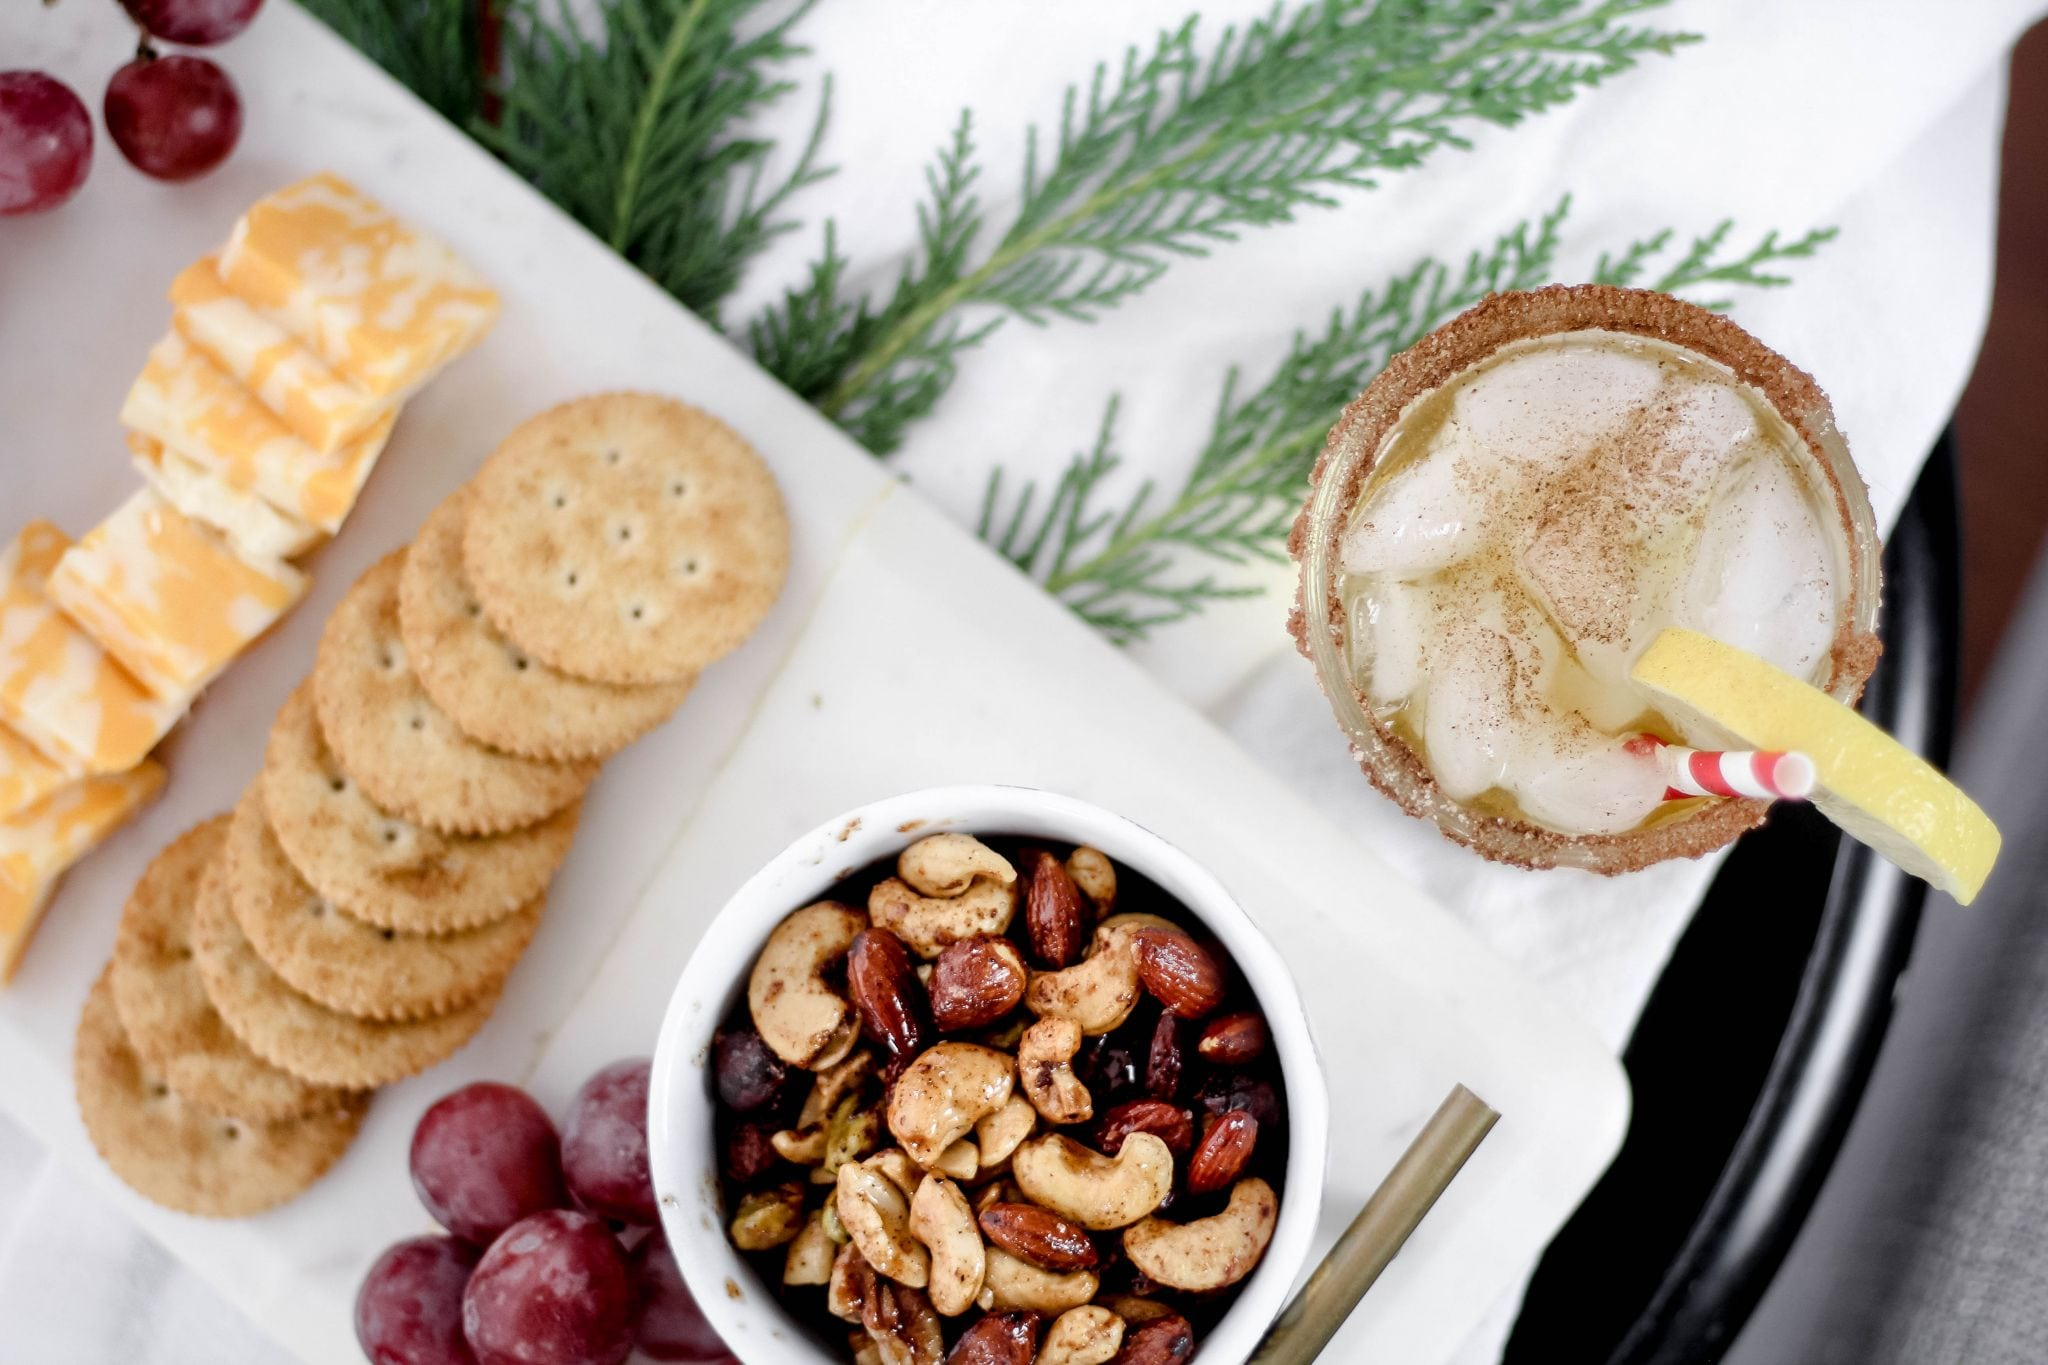 Hosting a Holiday Soiree with Planters Peanuts